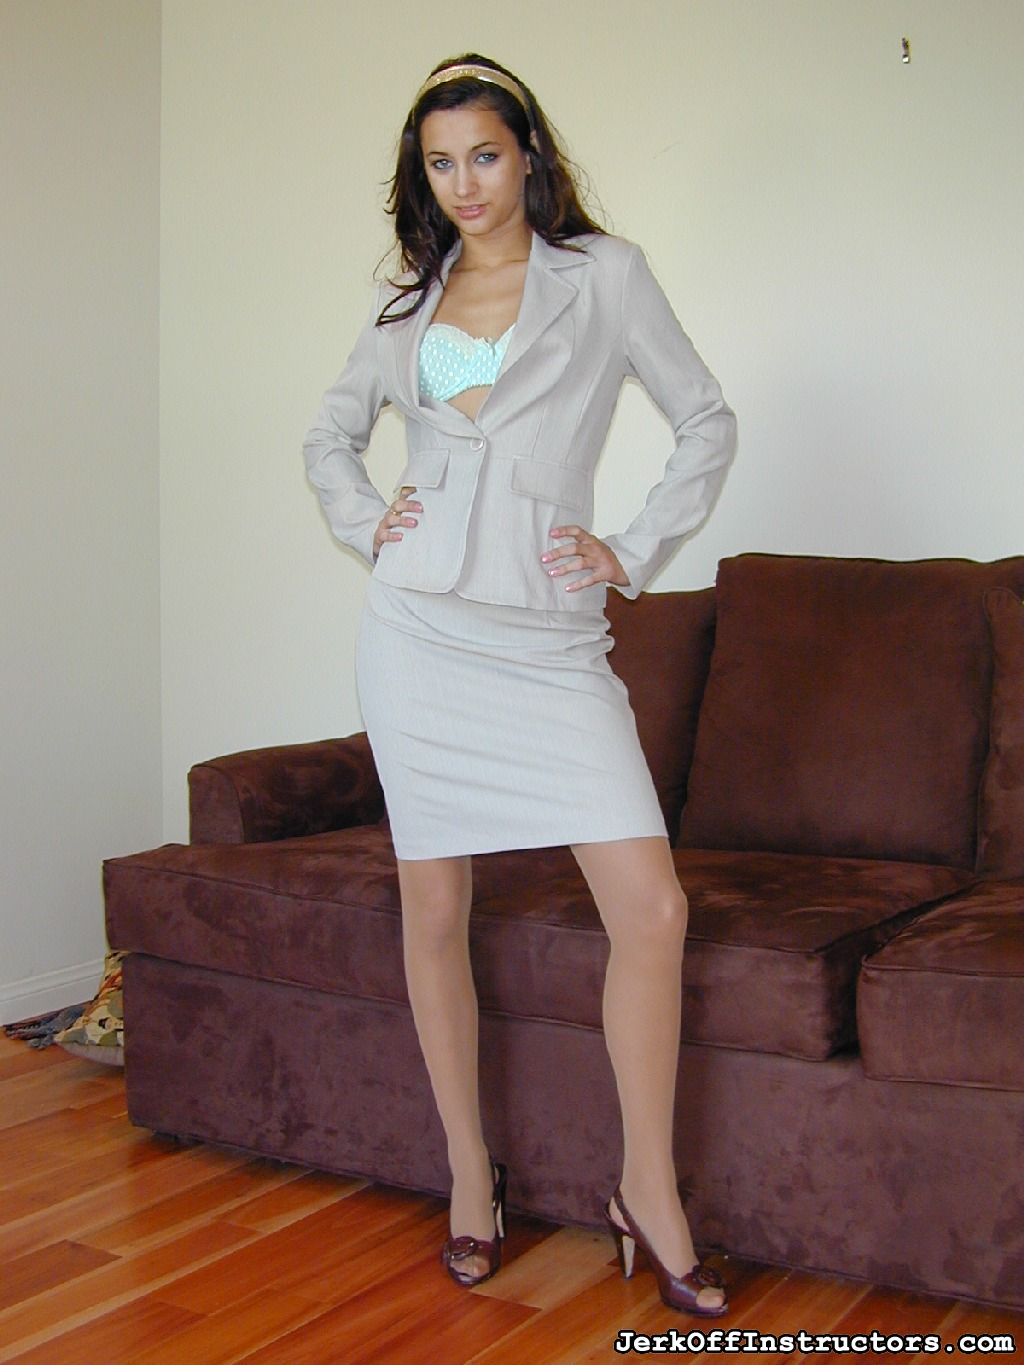 Georgia jones  suit 90. Georgia Jones' in a tight business suit, nude sheer to waist pantyhose with lots of sexual office games to set you off!